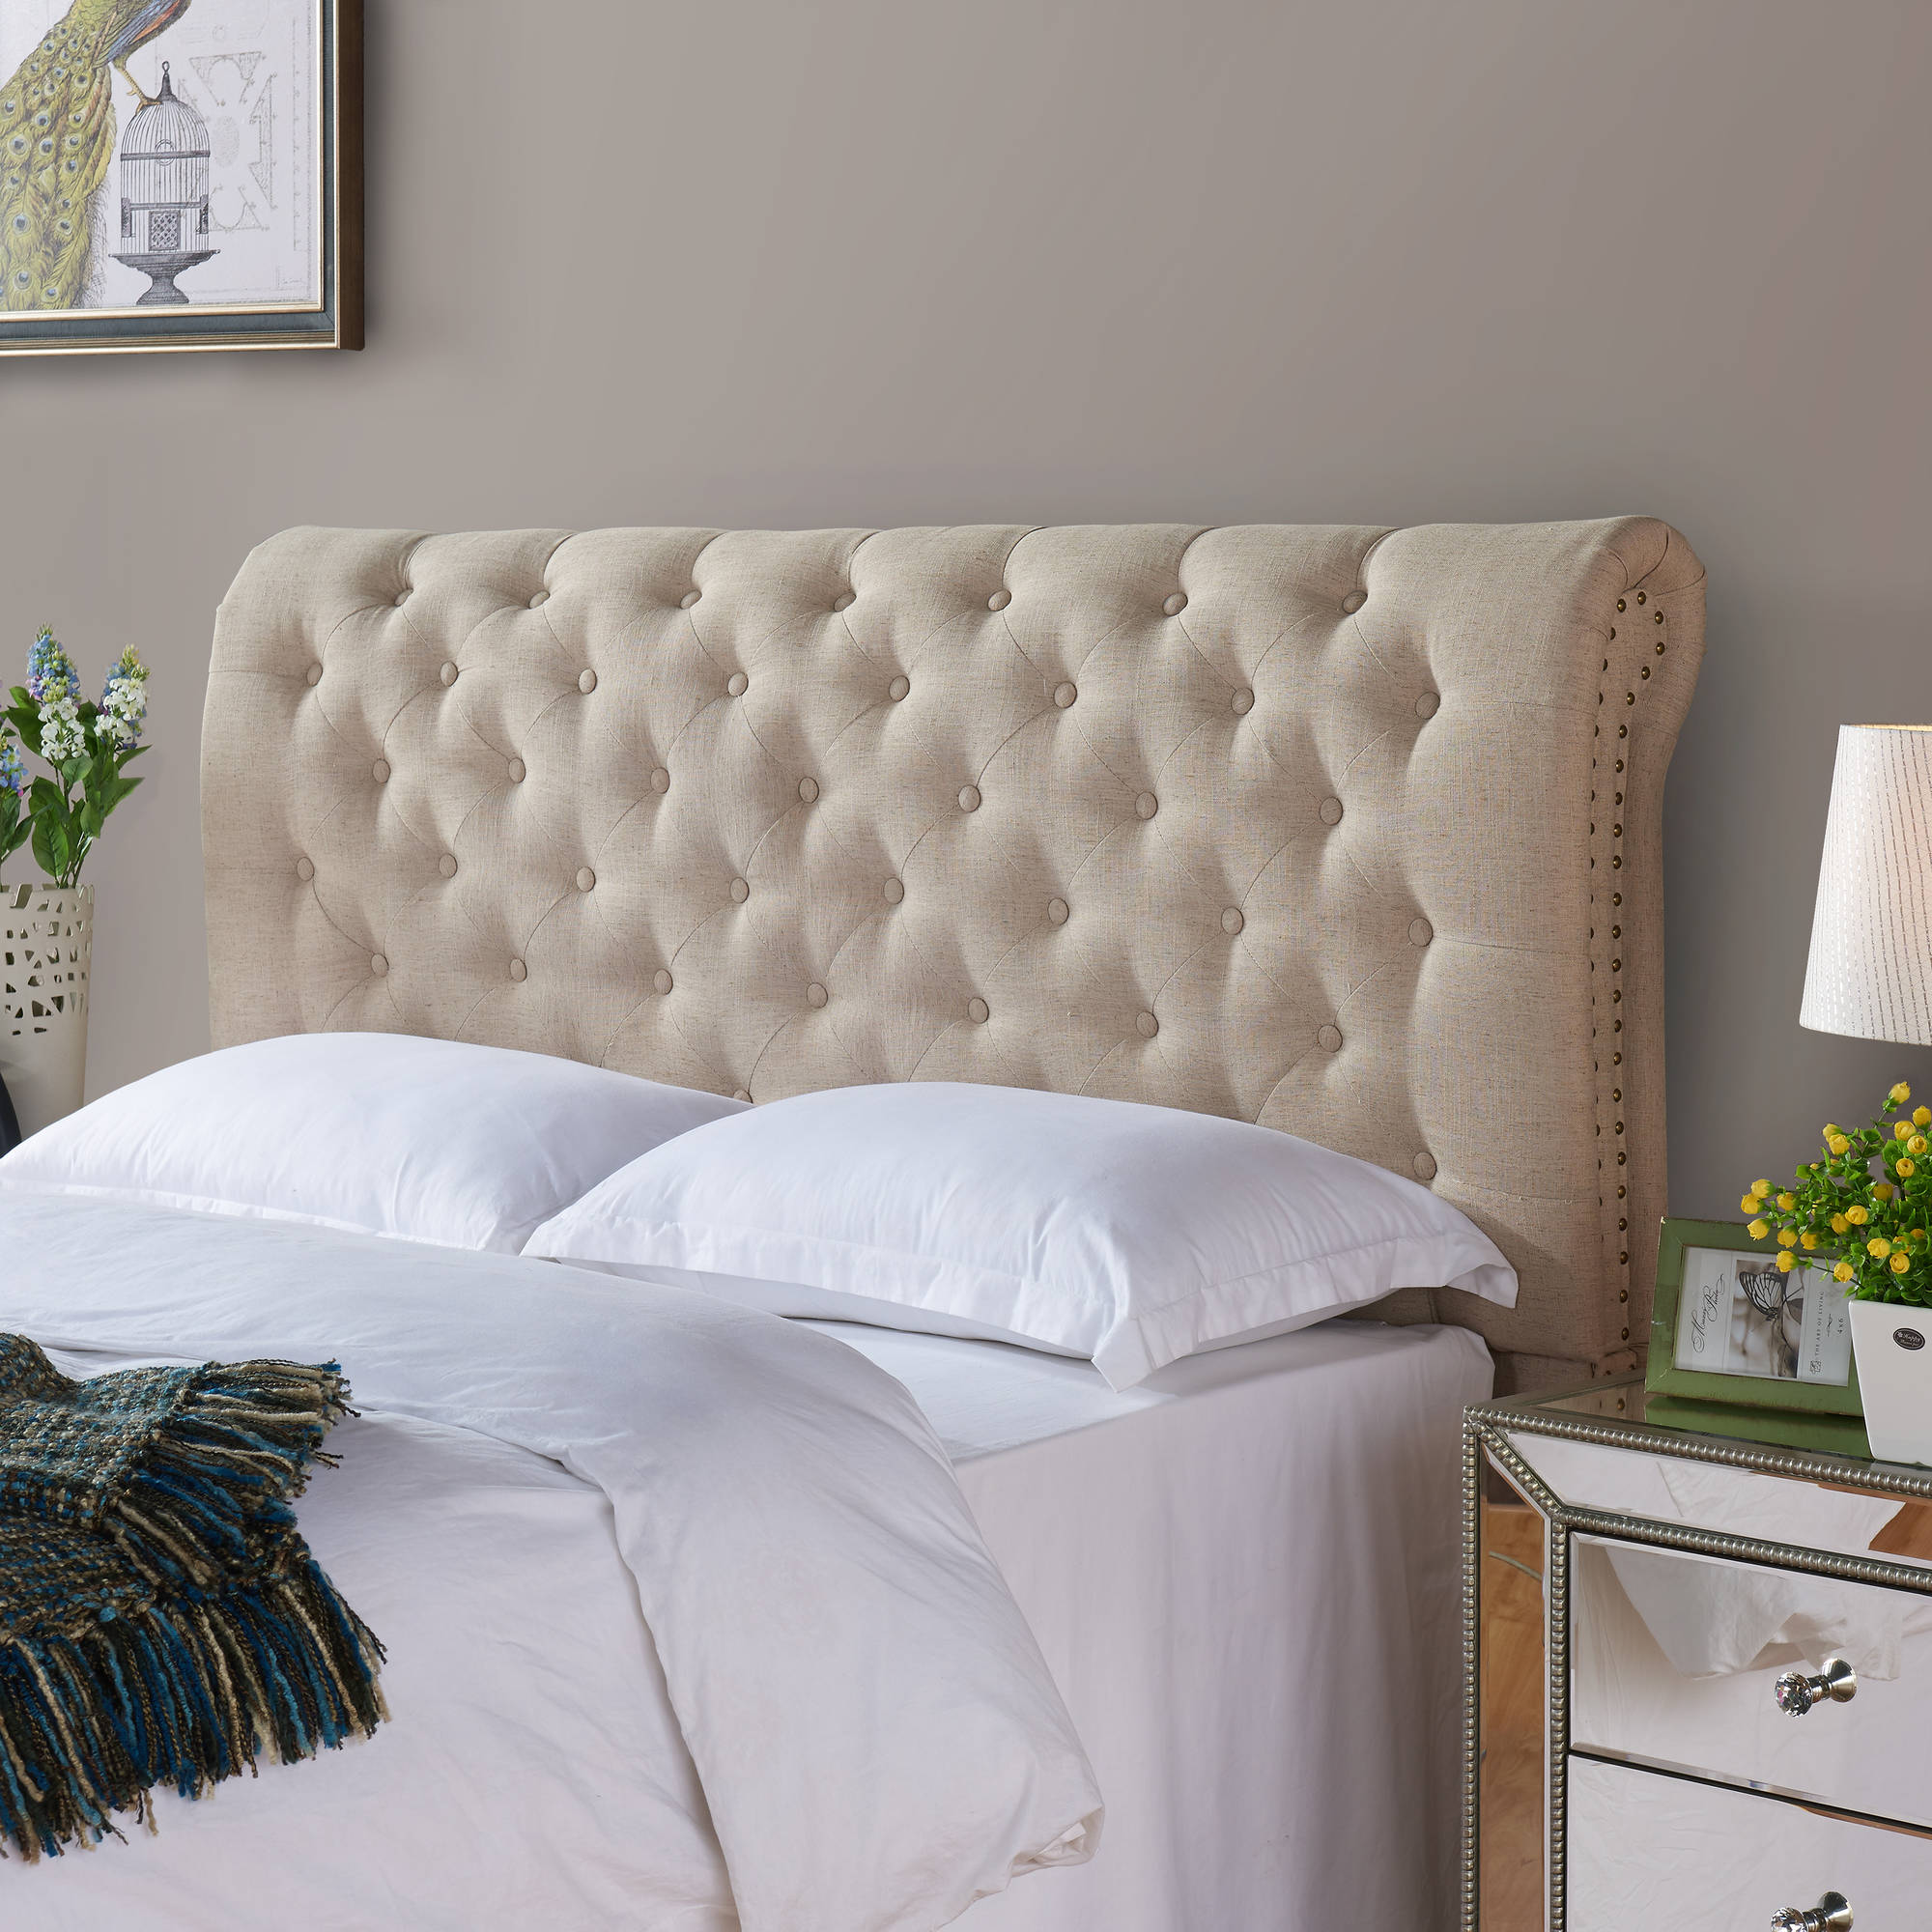 Better Homes & Gardens Rolled Tufted Headboard, Sand, Multiple Sizes - Walmart.com